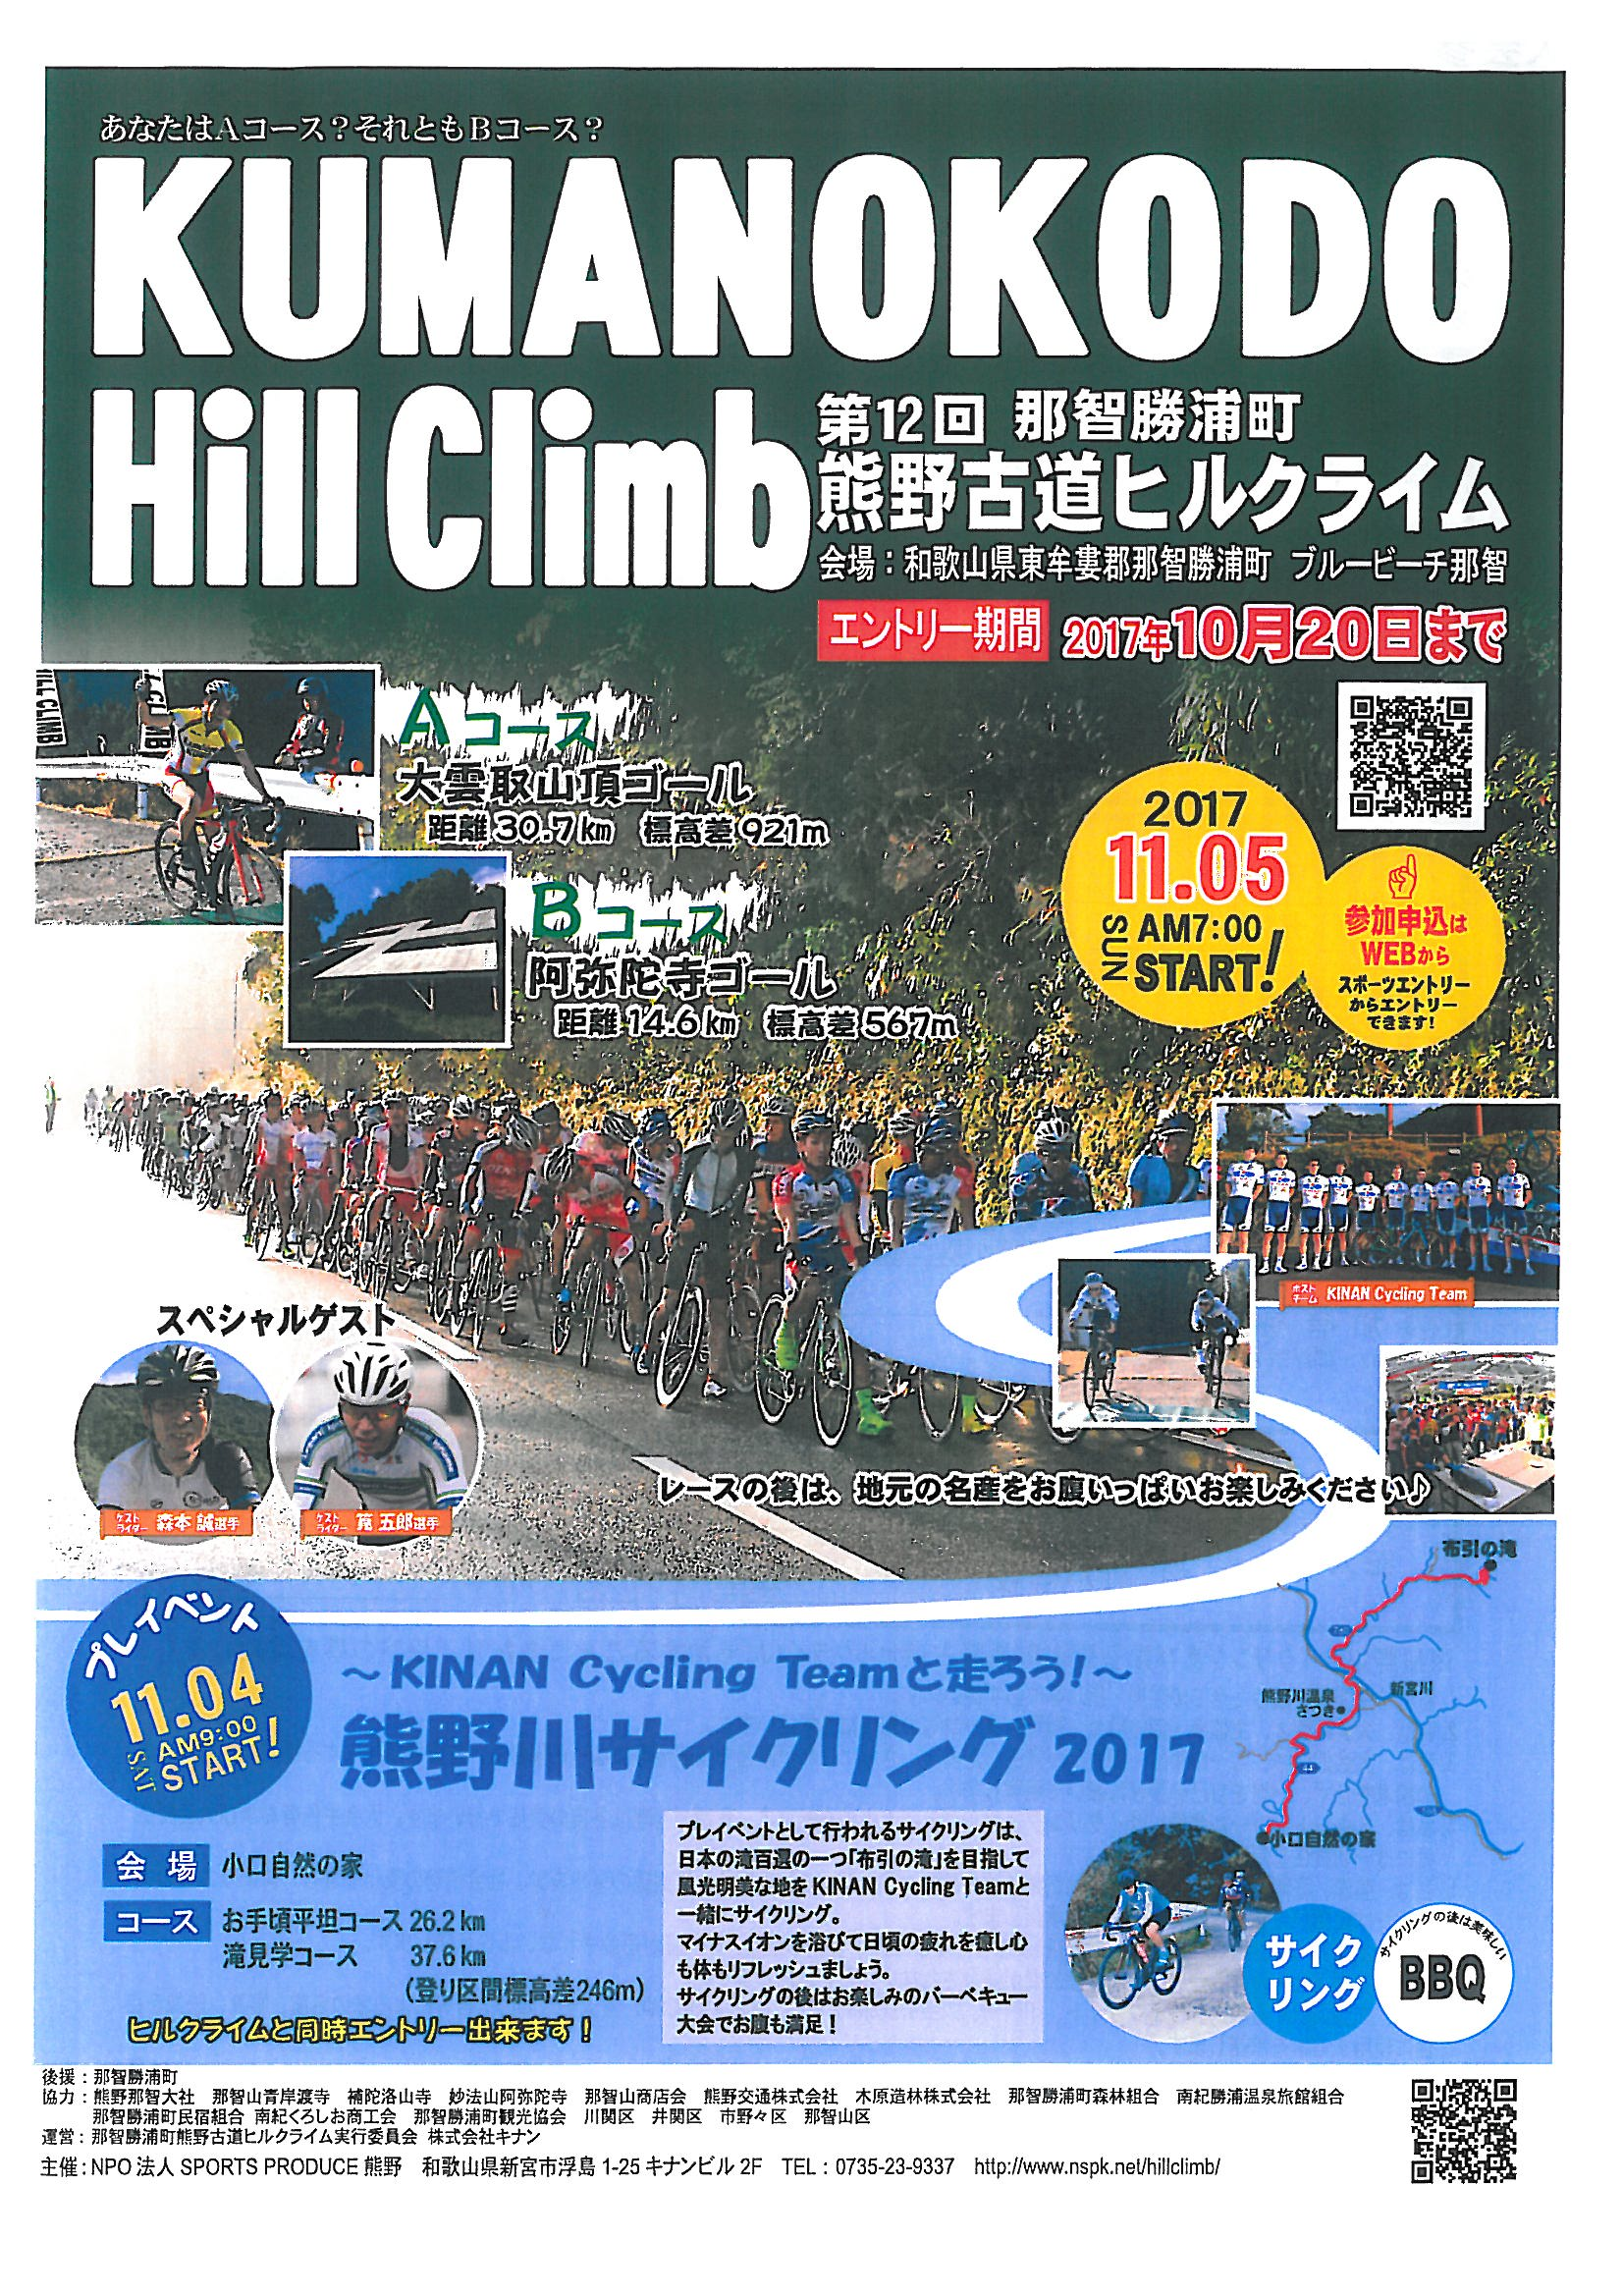 ~KINAN Cycling Teamと走ろう!~熊野川サイクリング2017